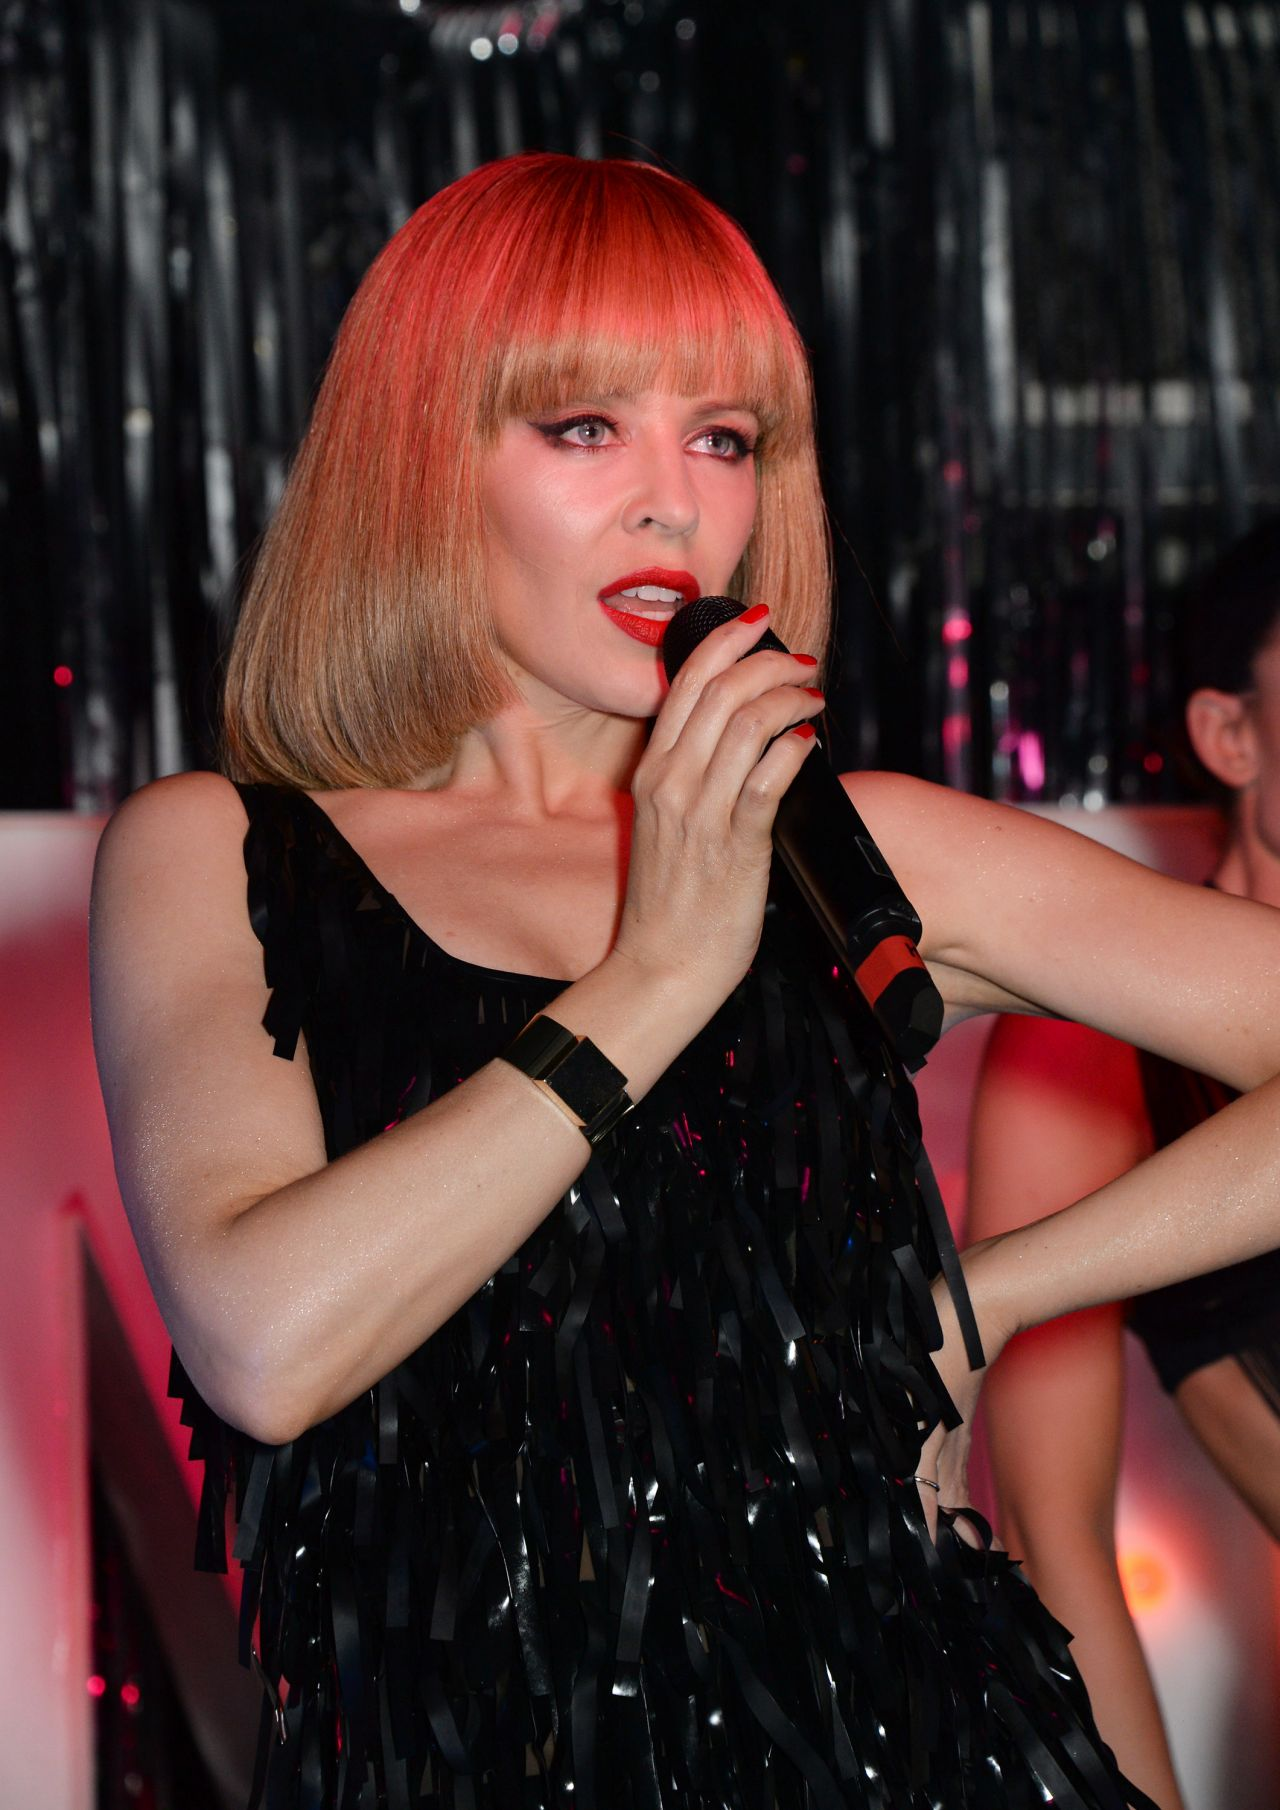 Kylie Minogue - Performance at The Old Blue Last Pub - London, February 2014